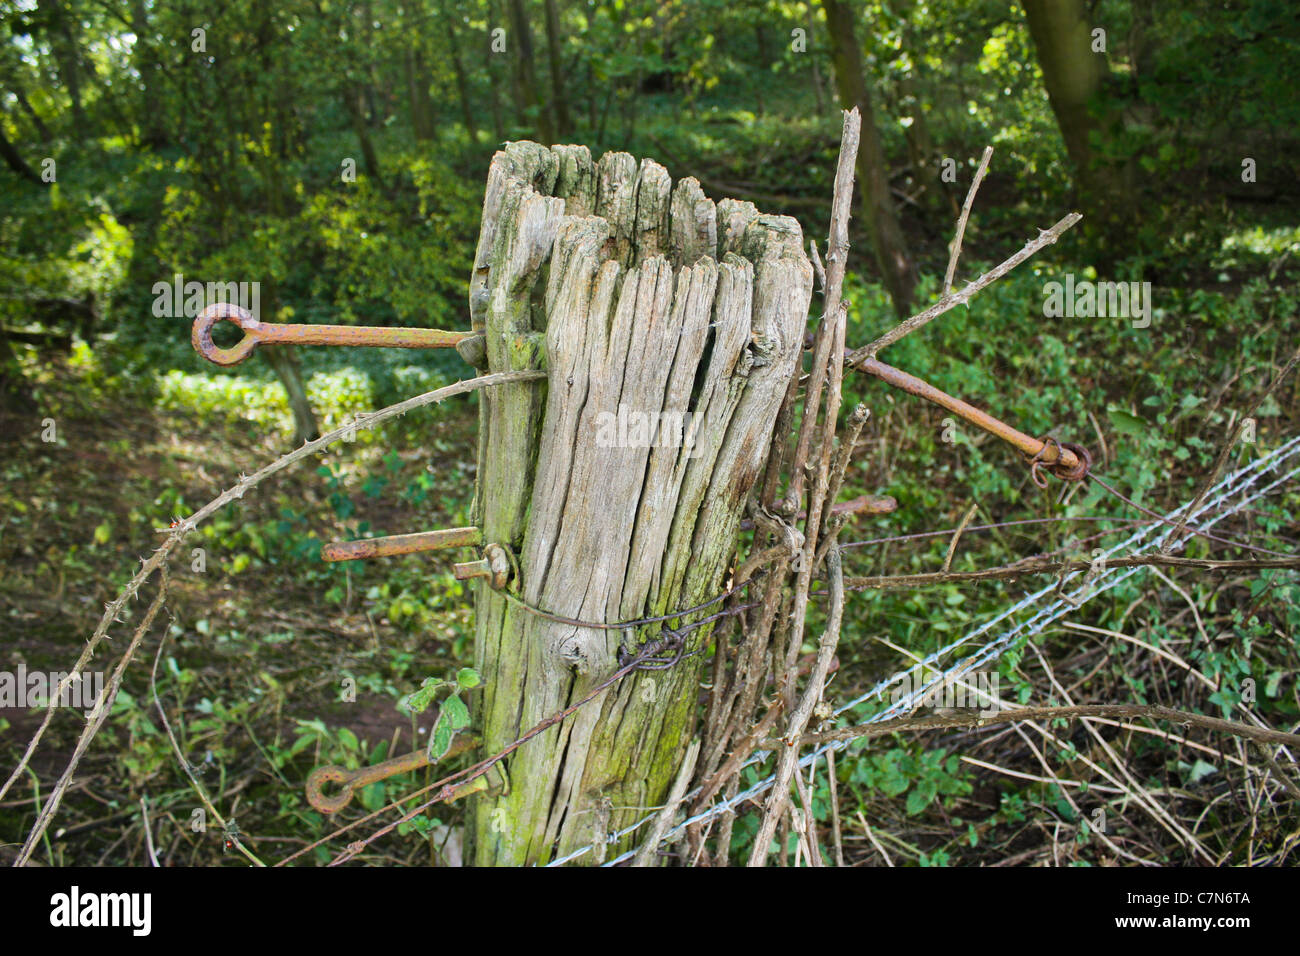 Fence post defense on the edge of Castle Hills Wood, Gainsborough, Lincolnshire, - Stock Image